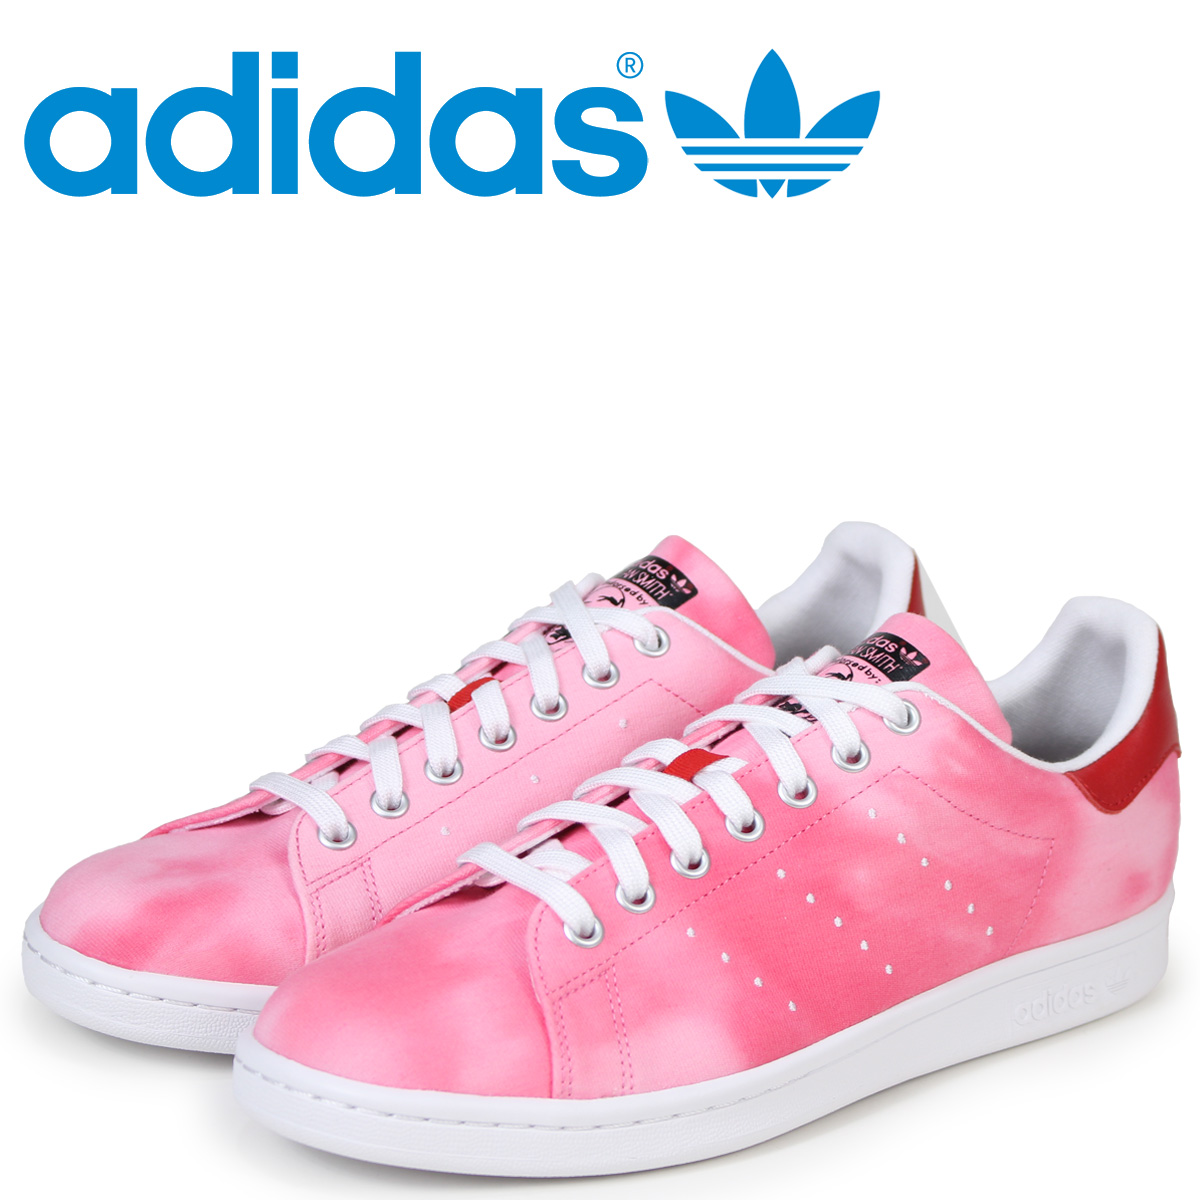 3d236caaa adidas Originals Stan Smith Adidas sneakers Farrell Williams PW HU HOLI  STAN SMITH men collaboration AC7044 red originals  load planned Shinnyu  load in ...